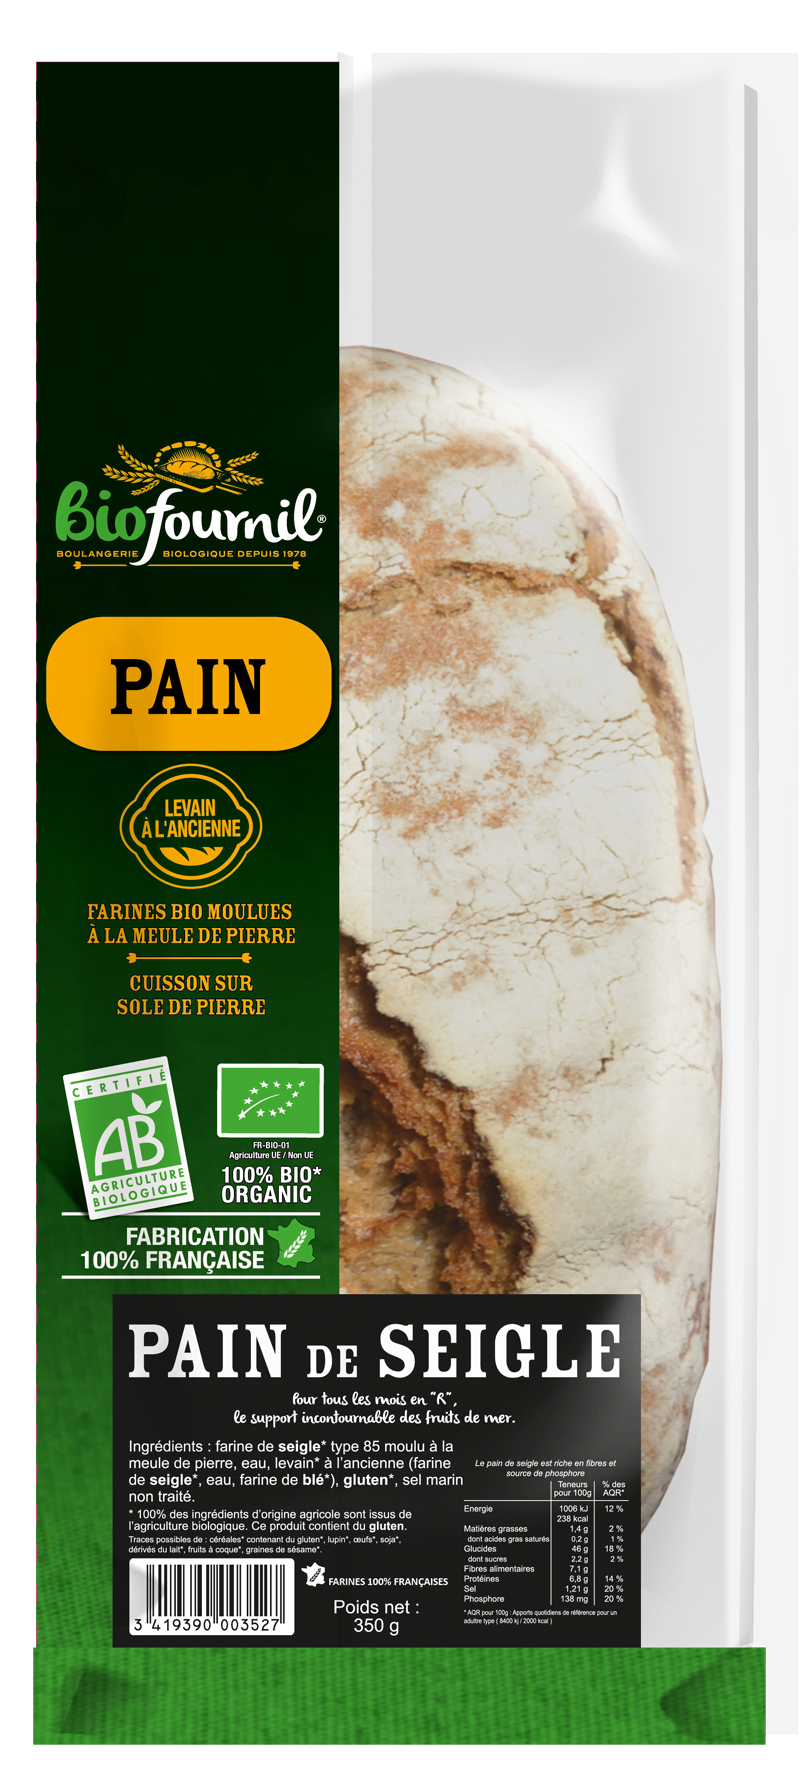 pain-seigle-levain-a-l-ancienne-packaging